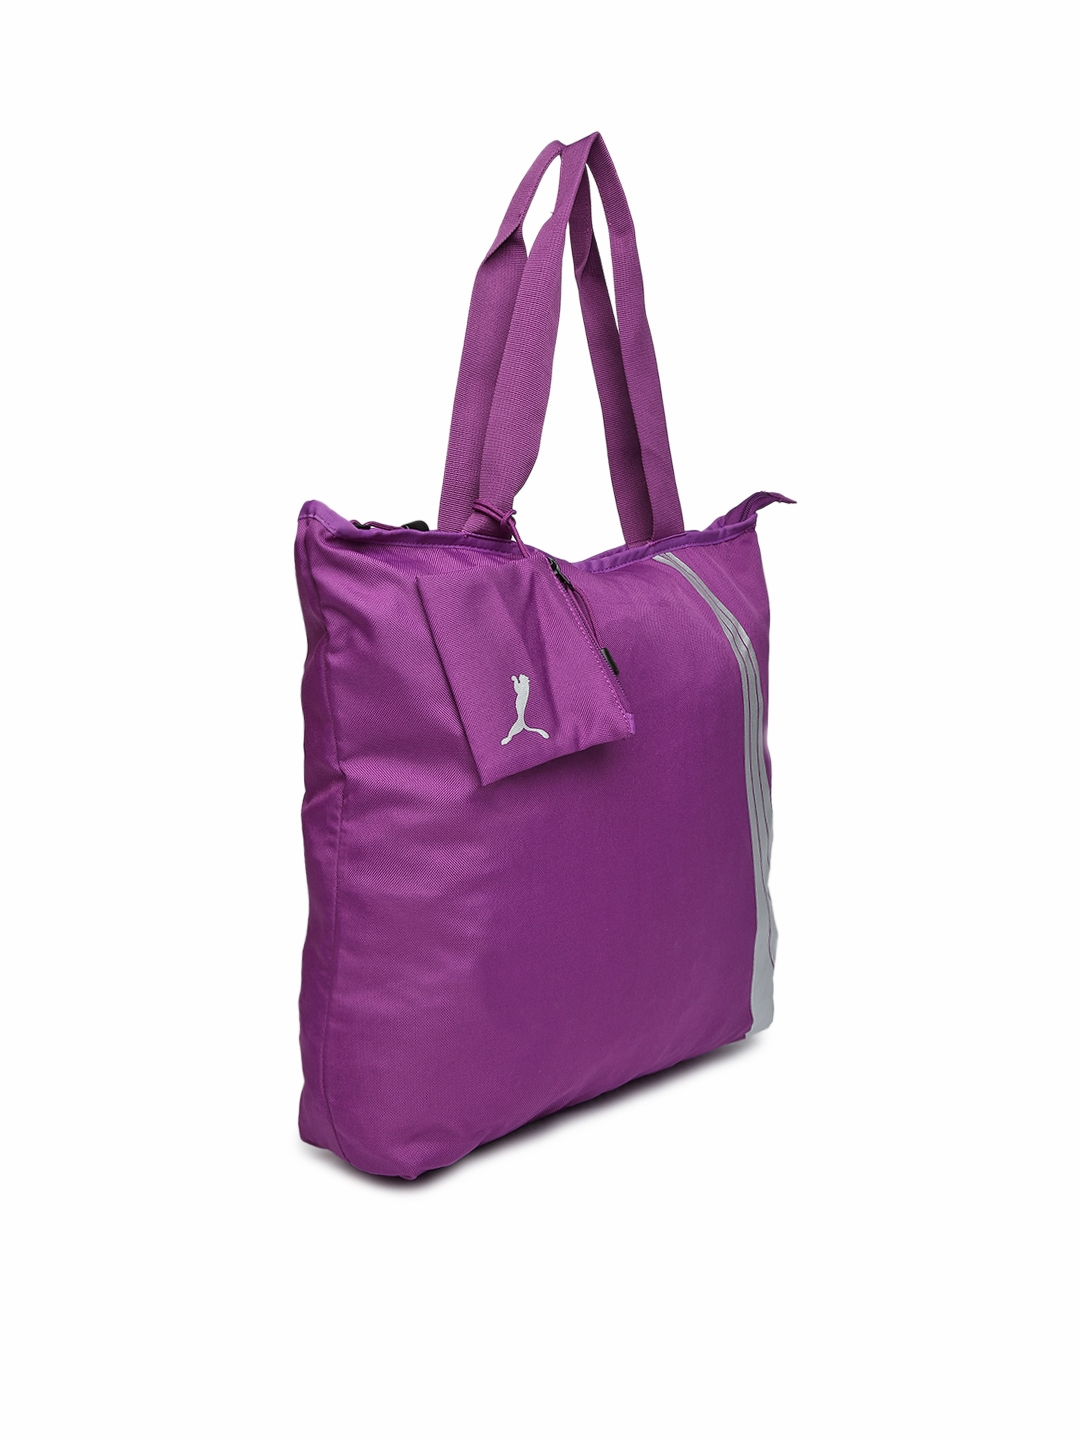 c8b192a8edef Buy PUMA Purple Shopper Bag - Handbags for Women 935436